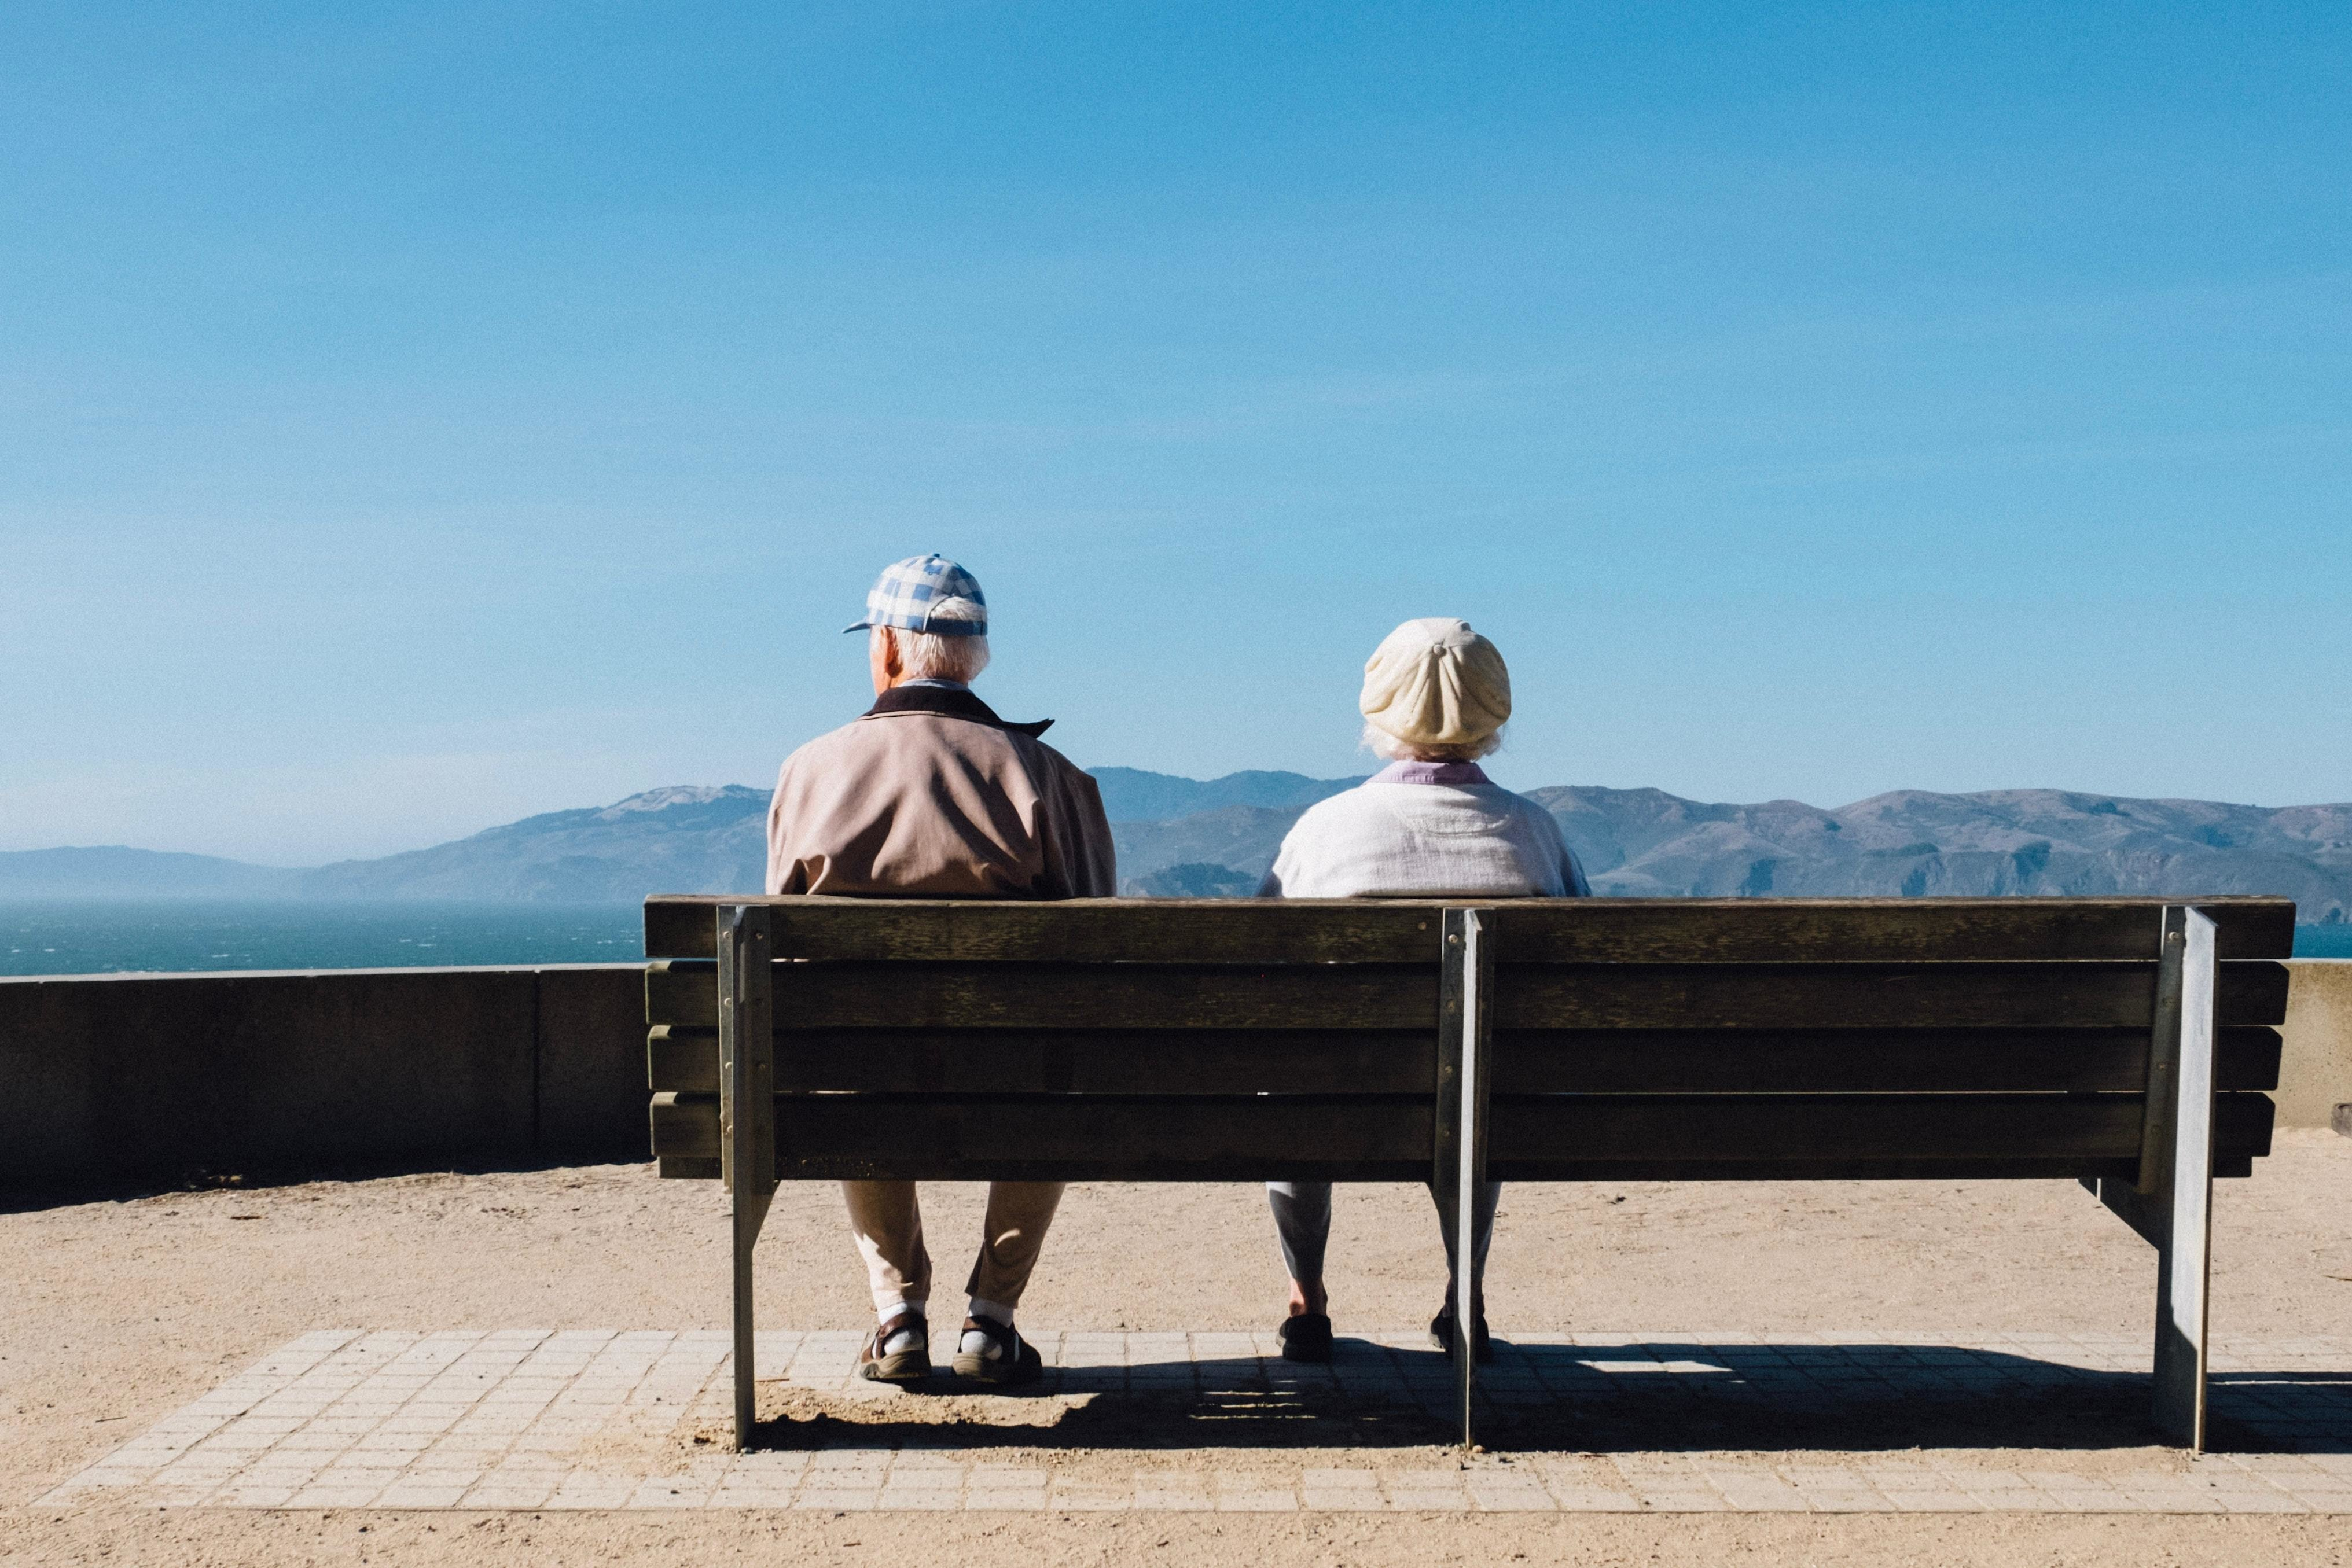 two older people sitting on a bench. By 2050, it is predicted that people in the EU will work until they are 48.2 years old on average.